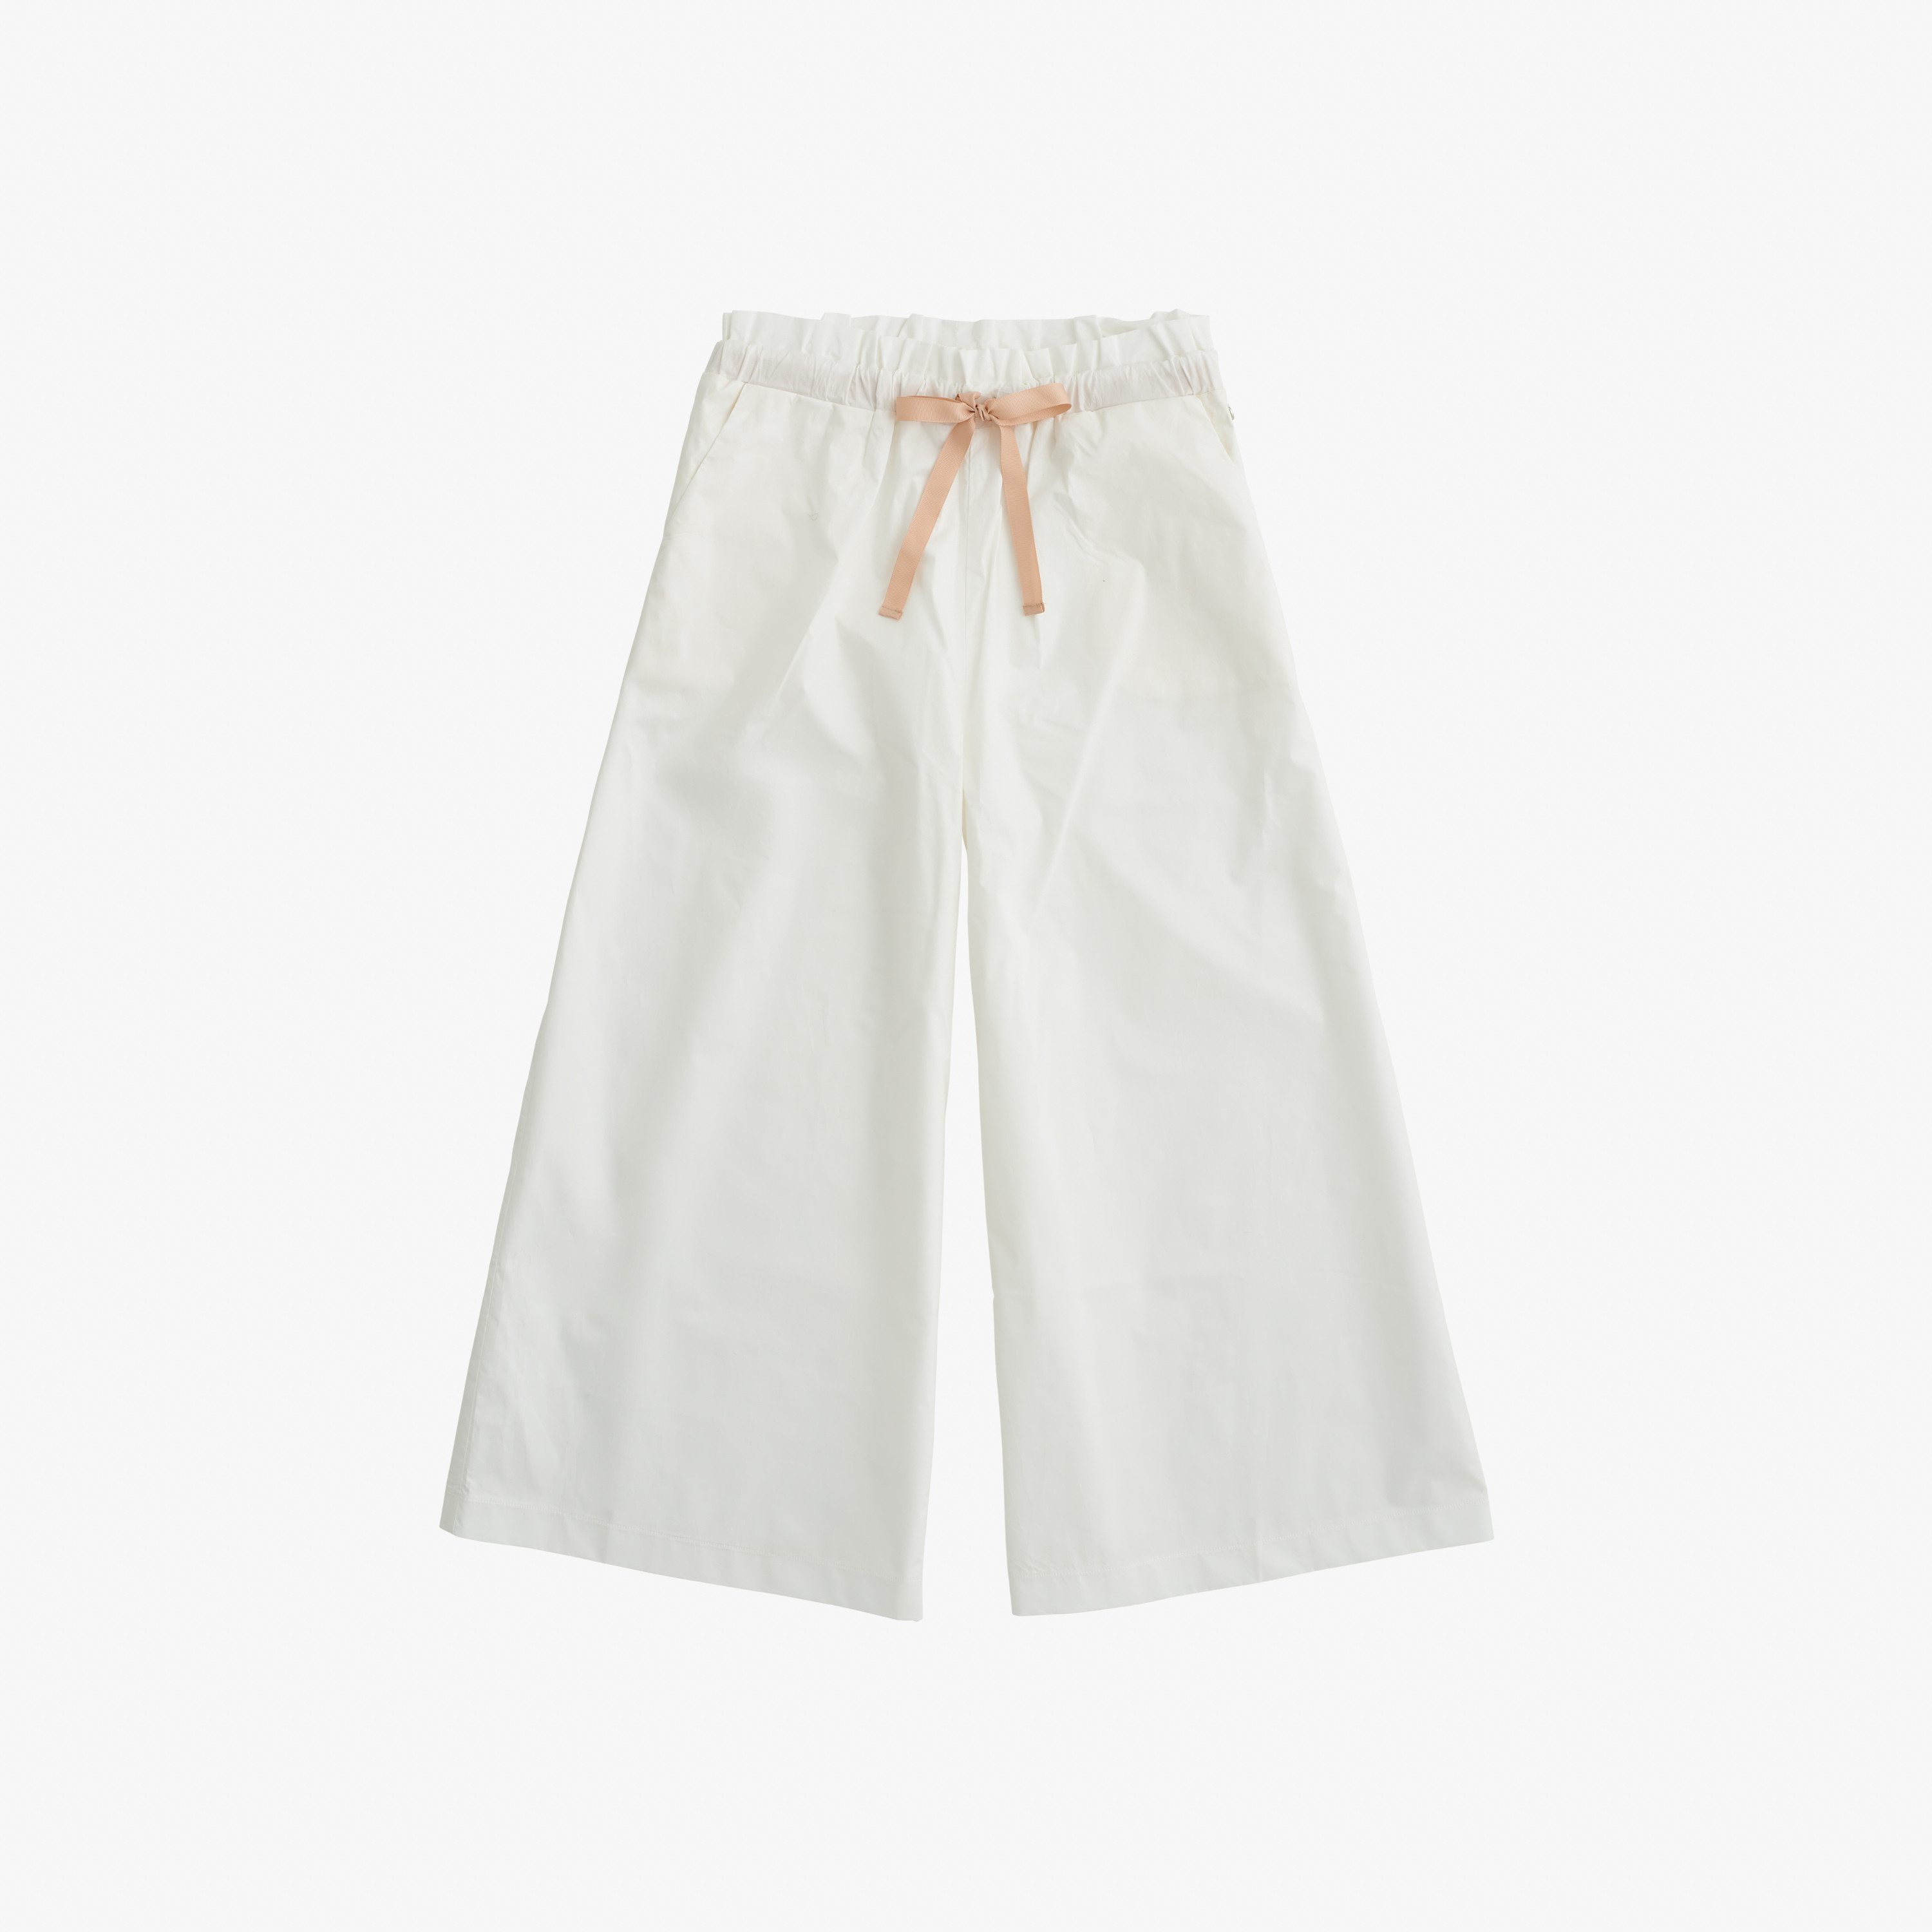 PANTS WIDE LEGS OFF WHITE